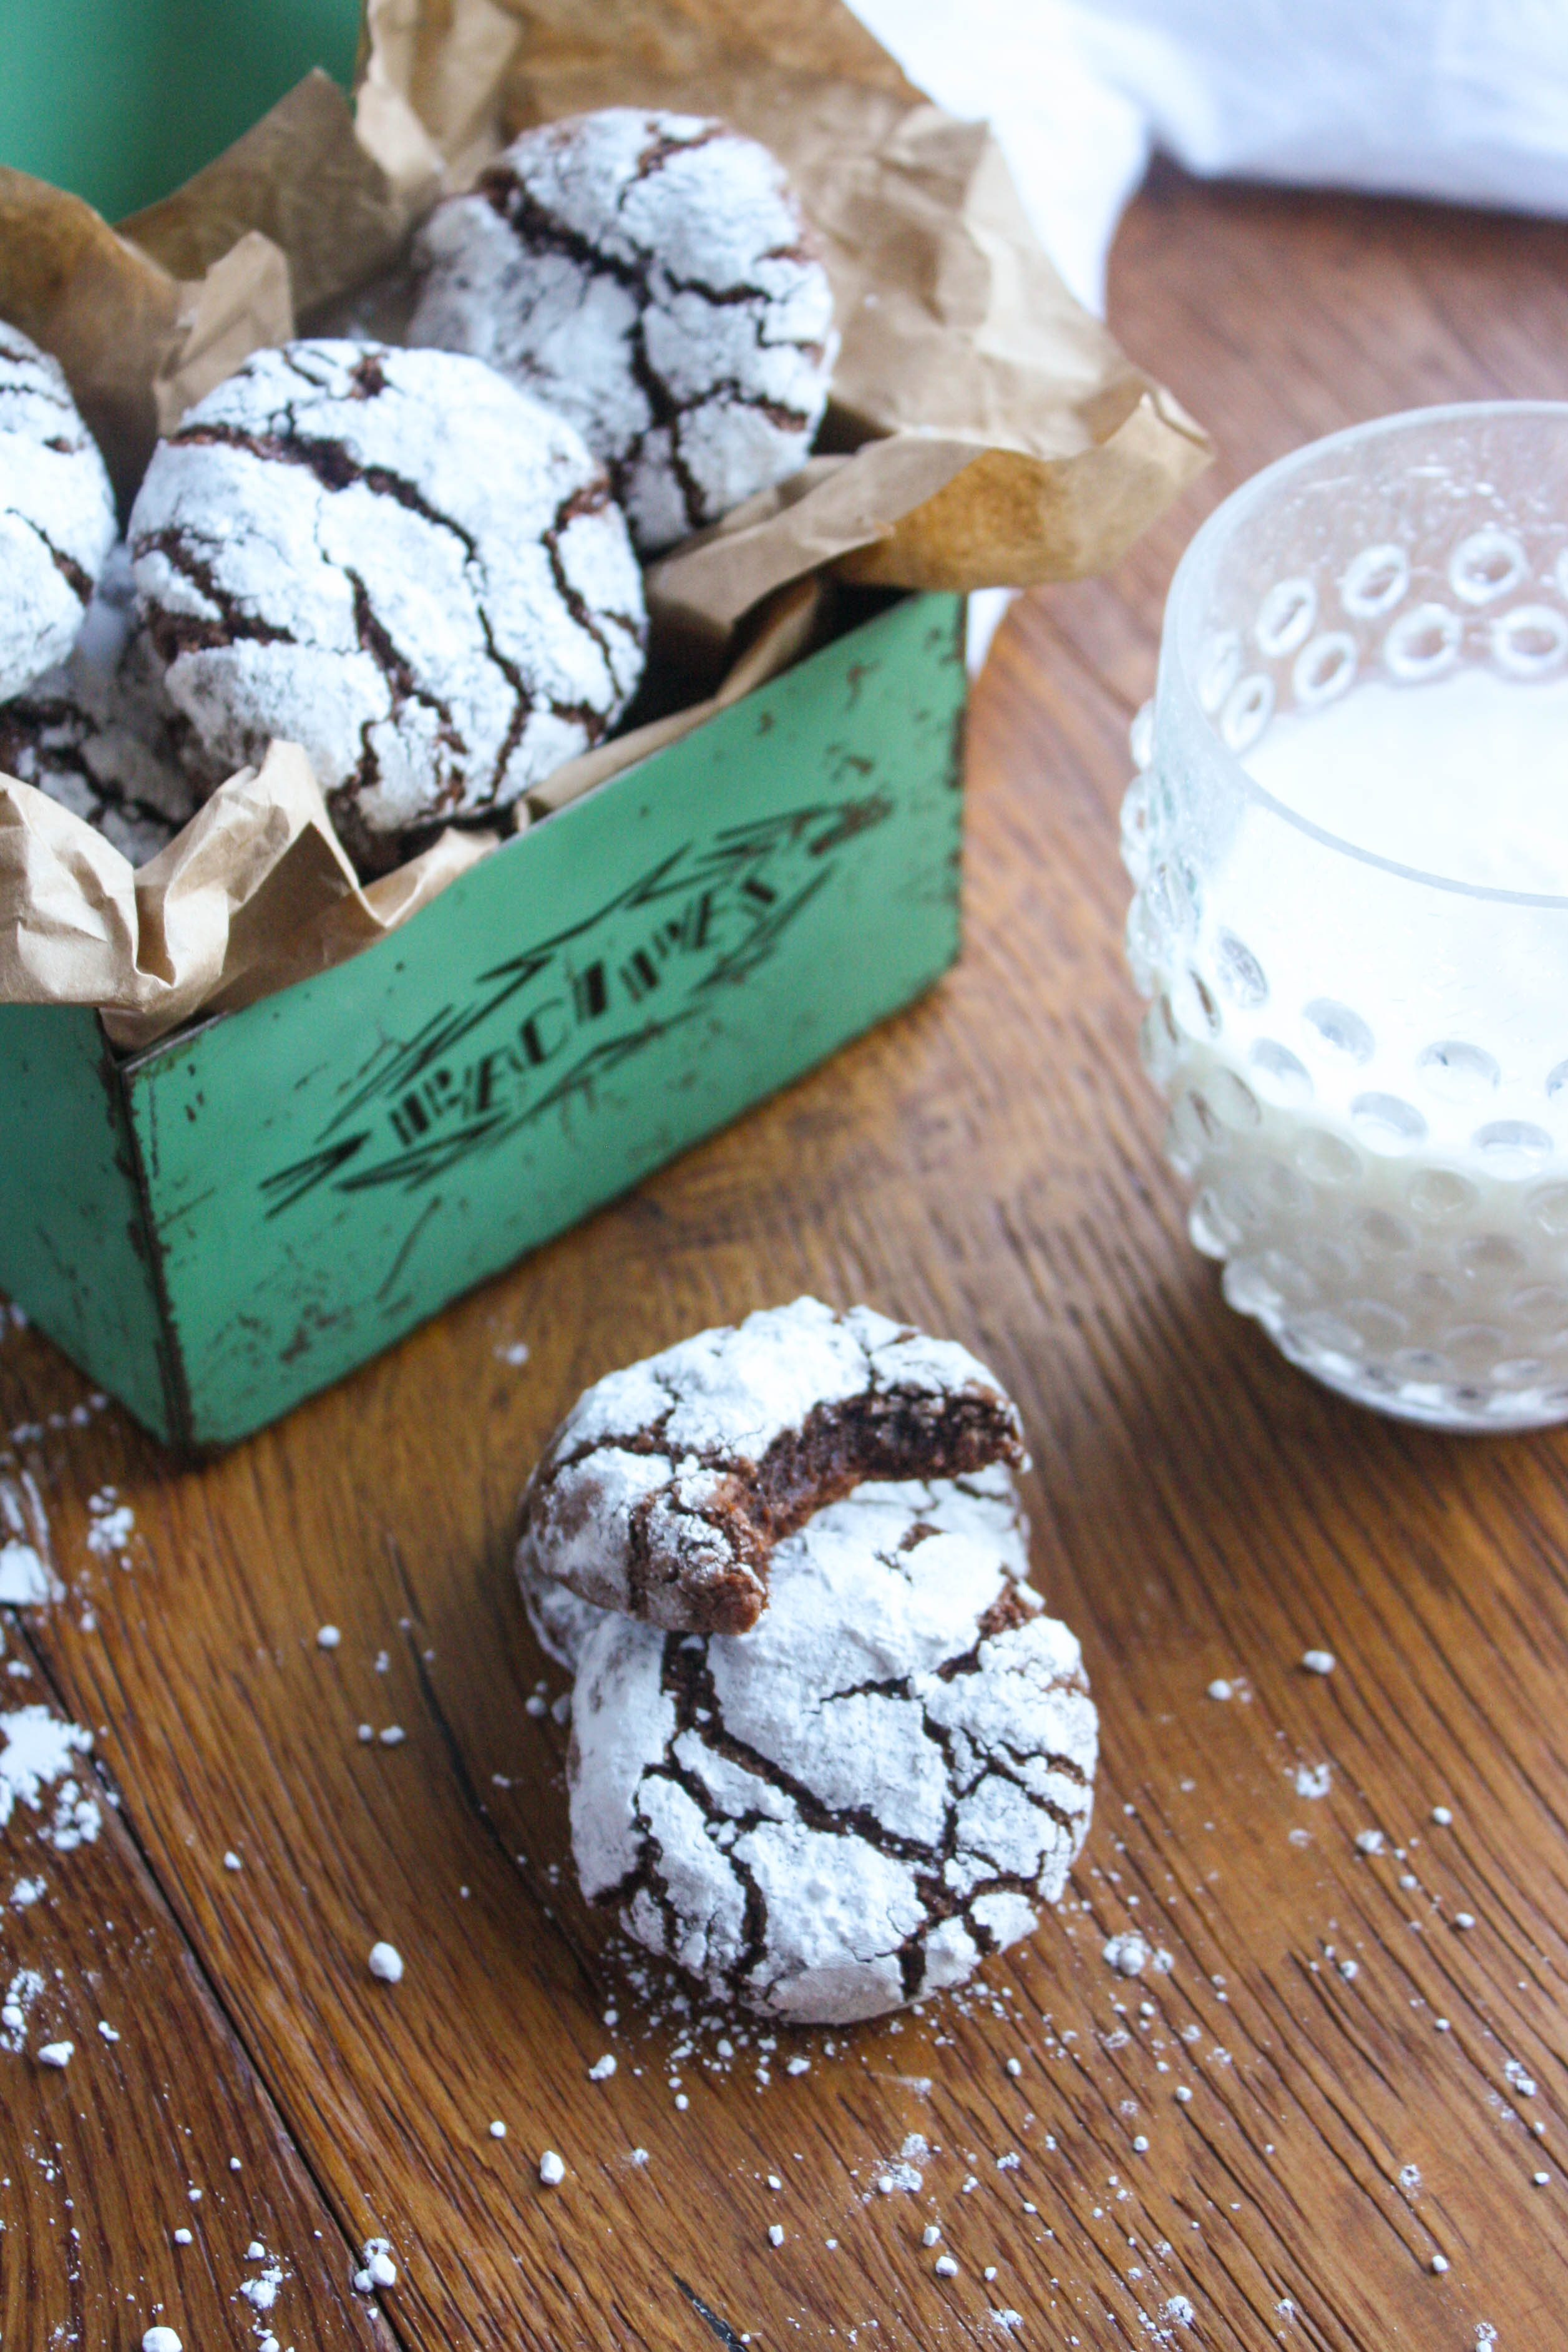 Chocolate-Chili Crinkle Cookies are the sort of cookies you'll want a few of! These cookies are pretty, and rich and chocolaty!